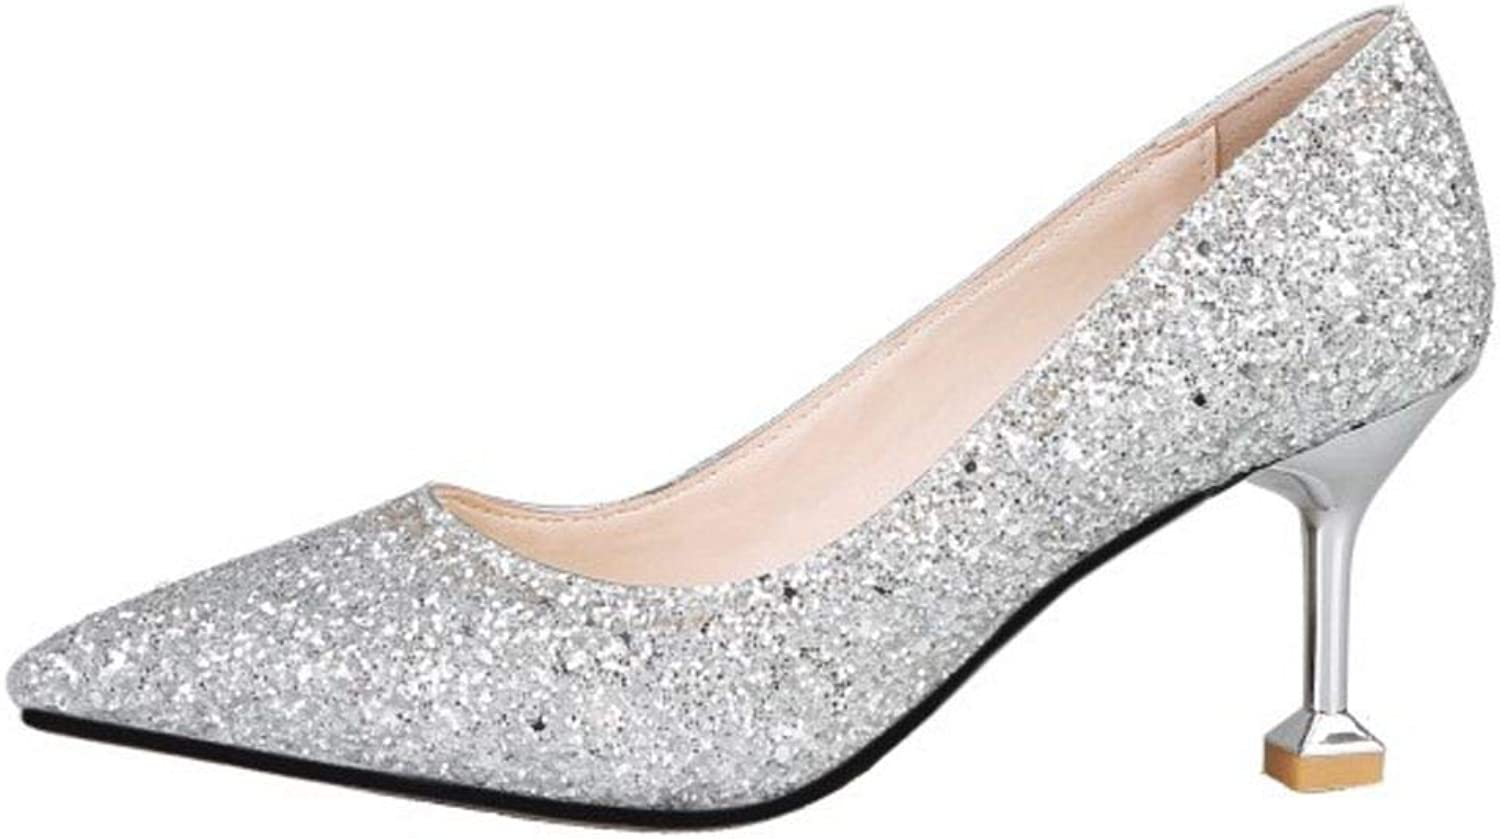 KemeKiss Women Bridal Pumps Glitter